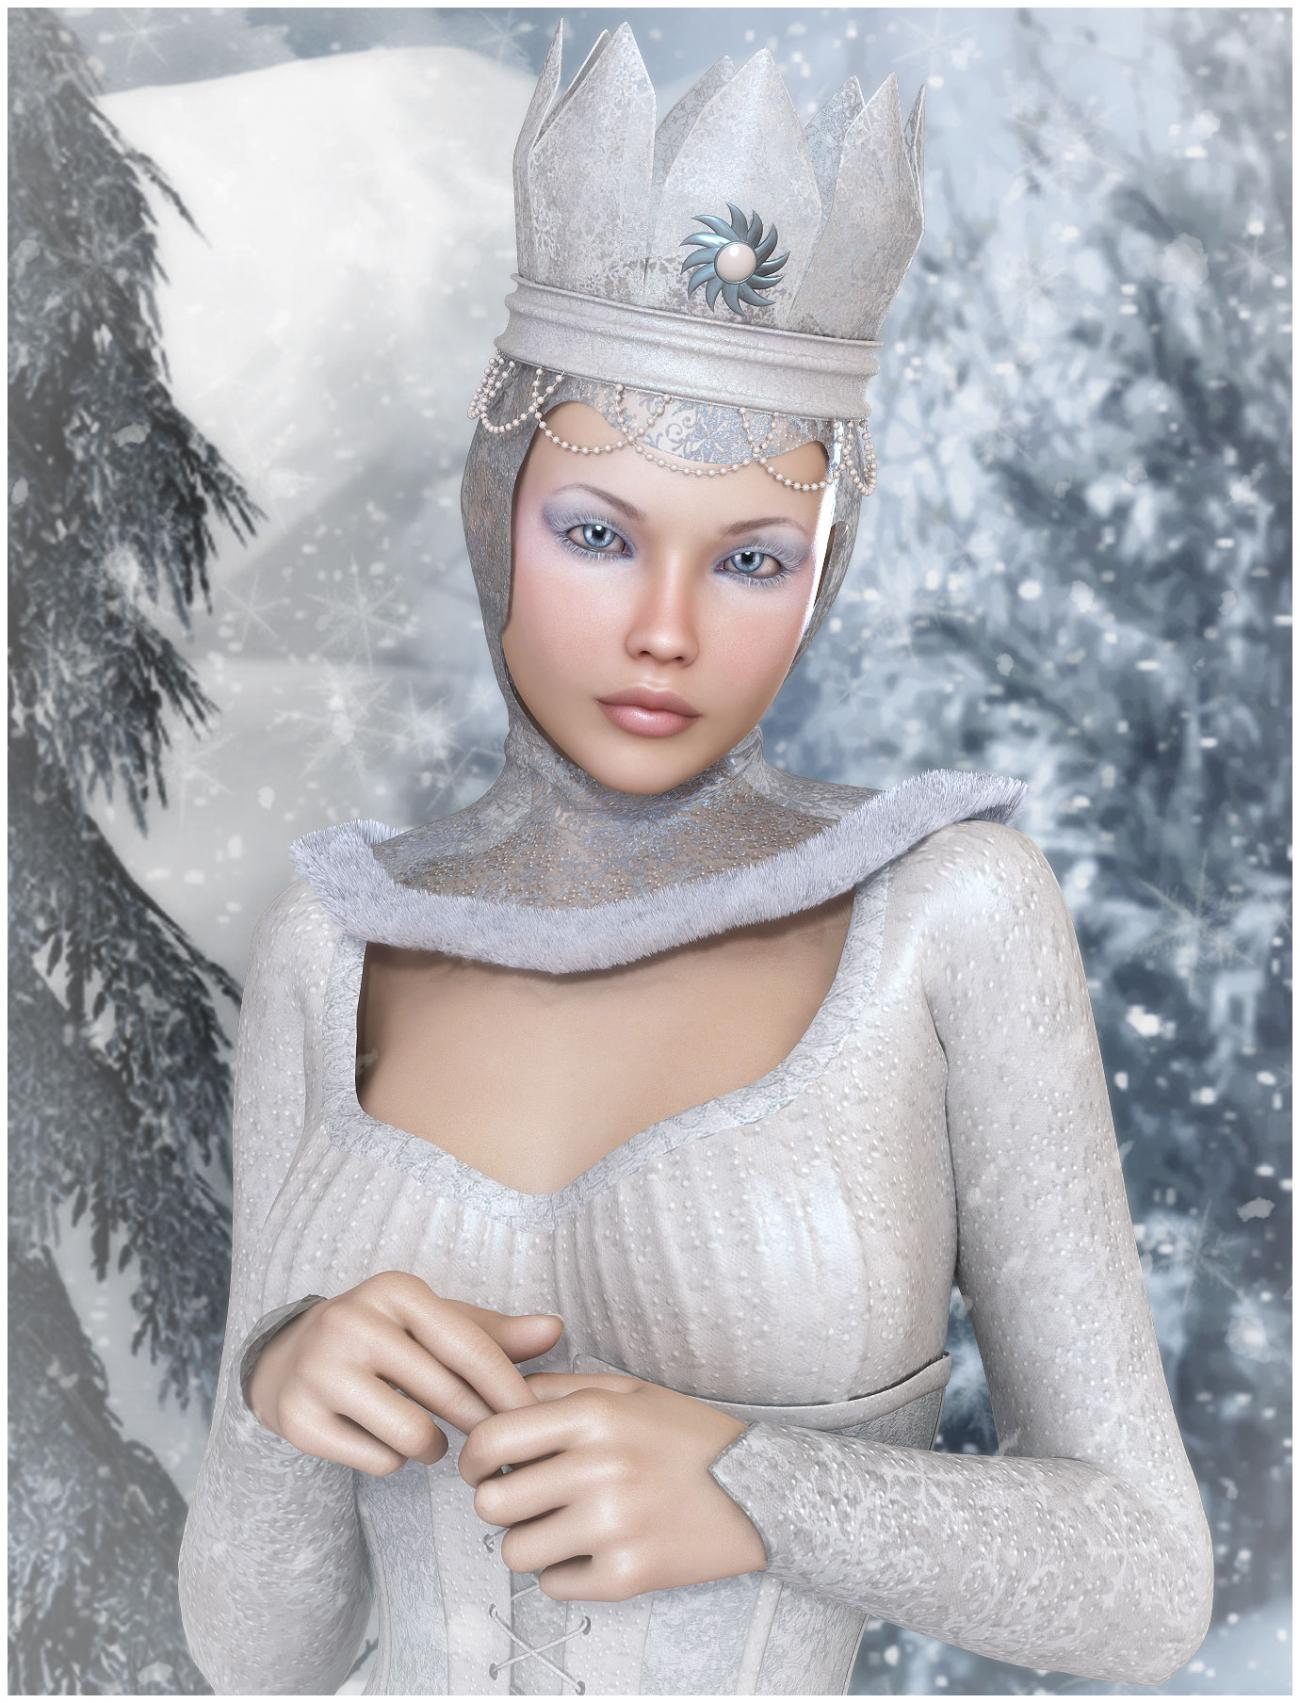 Chrystalia the Snow Queen by Jessaii